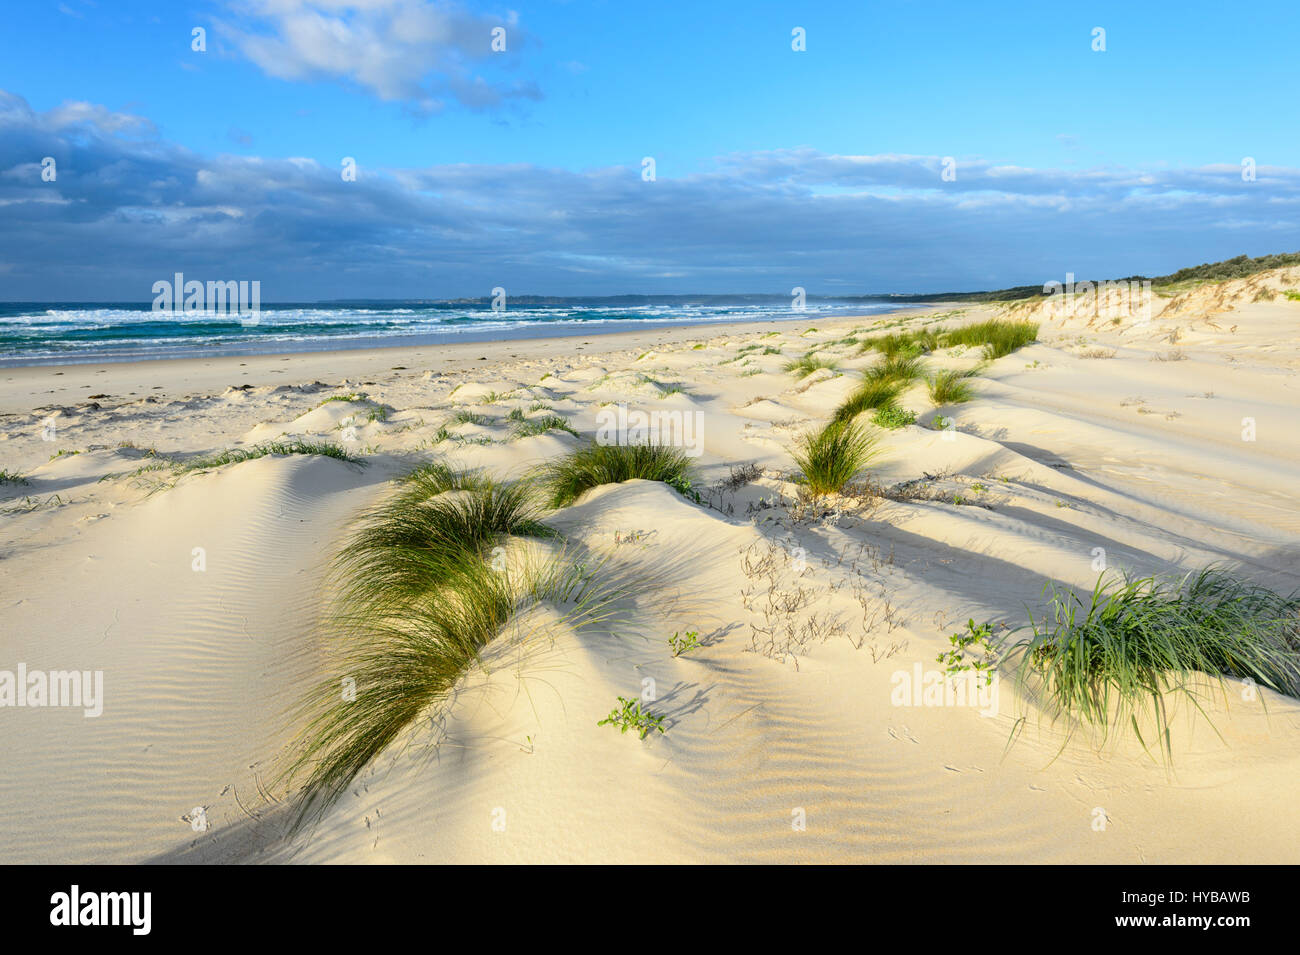 Picturesque sand dunes and grass tufts at Conjola Beach, Shoalhaven, South Coast, New South Wales, NSW, Australia - Stock Image